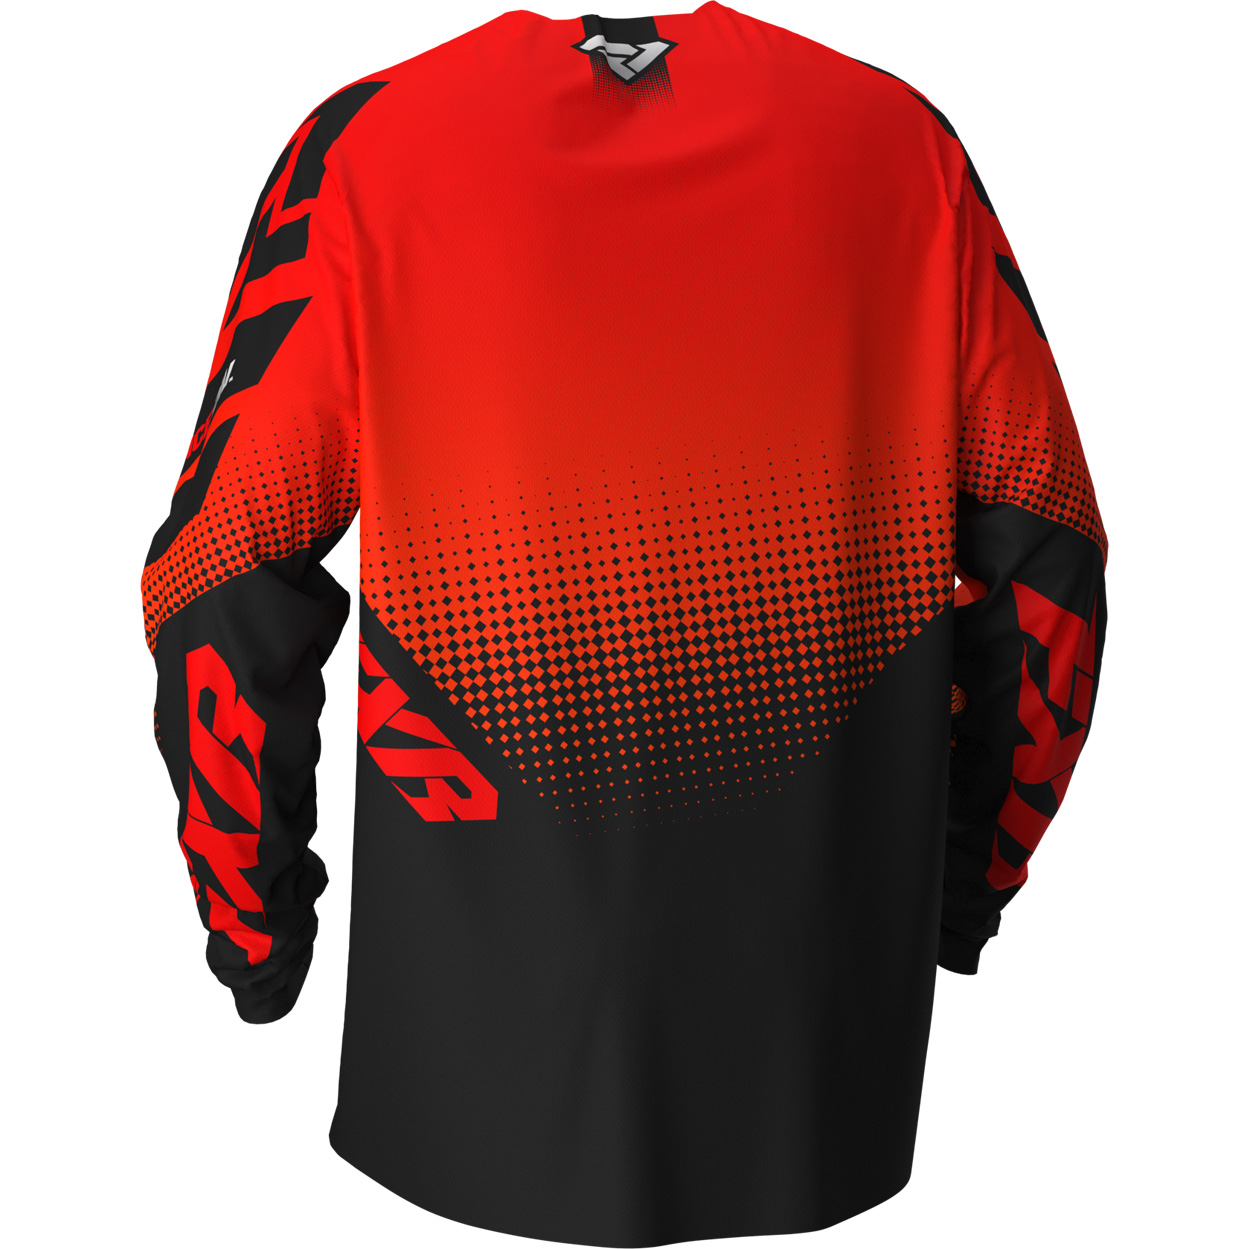 203303-2030 FXR RACING 2020 Clutch Motocross Jersey Red Orange Black Fade Maillot Enduro Crosstrui Downhill Jersey